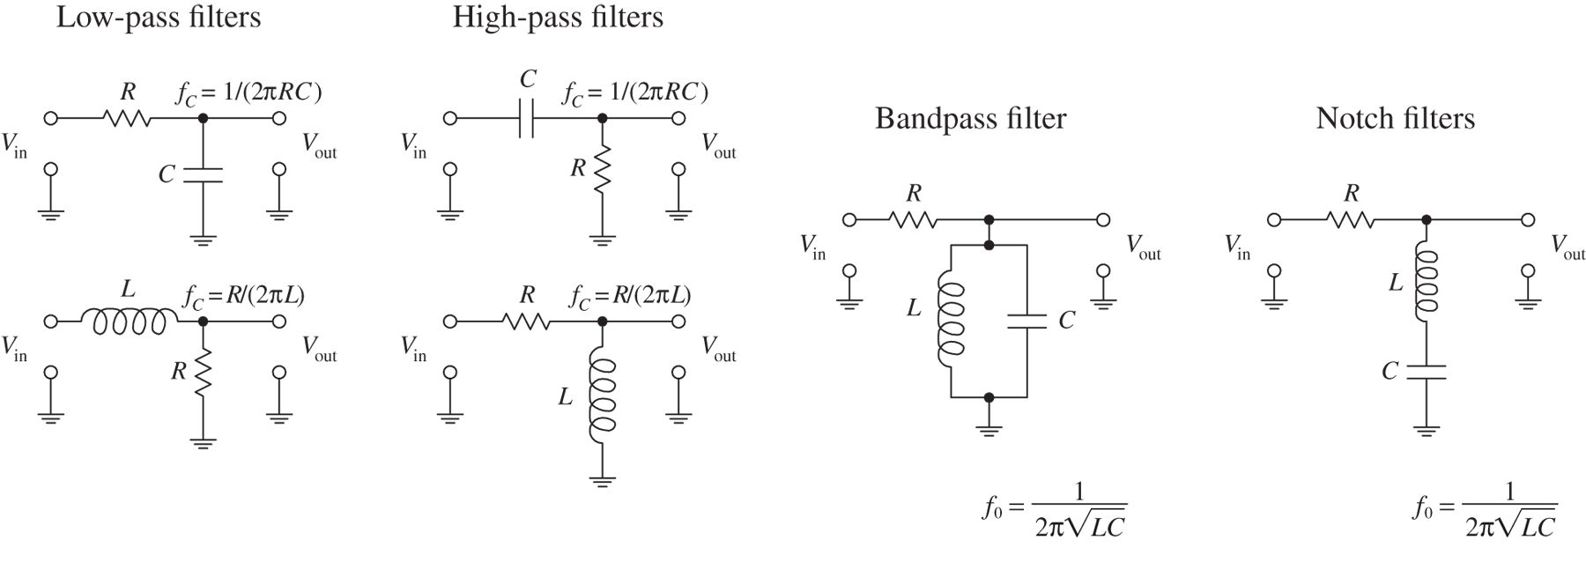 Passive High Pass Filter Design Circuitlab Rlc Band Stop Filters Practical Electronics For Inventors Fourth Edition Paul 1586x562